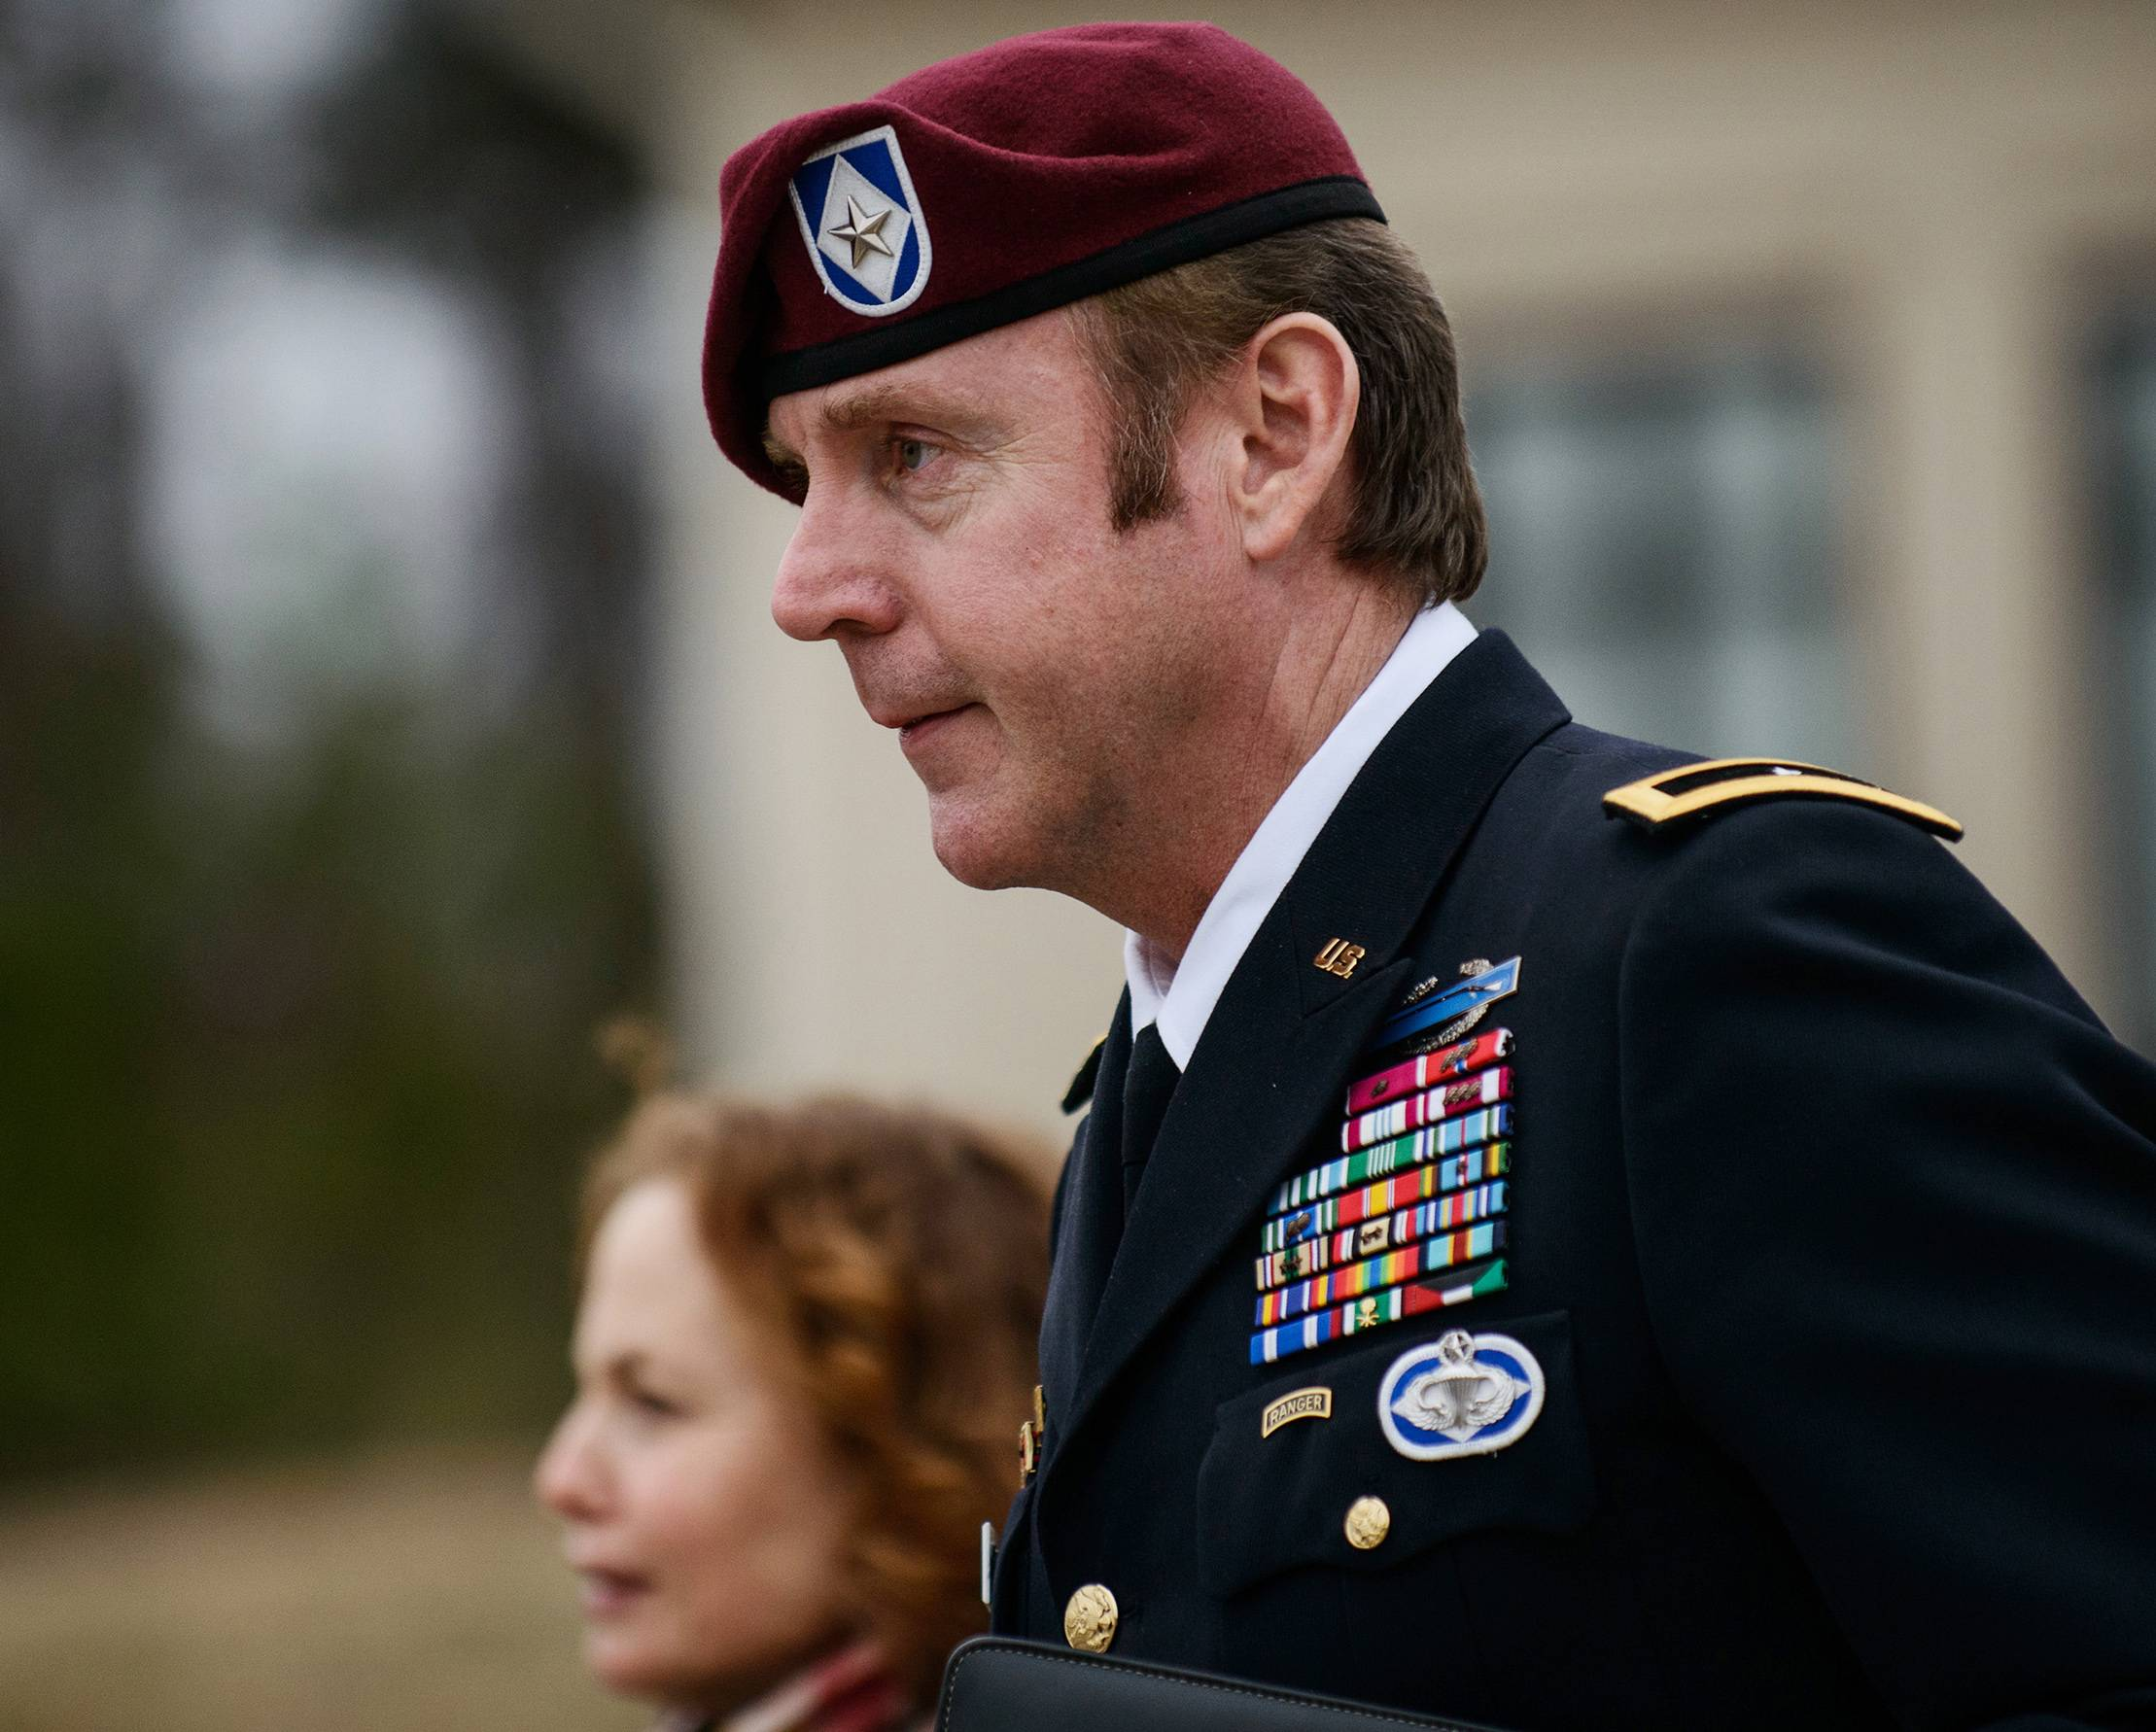 Attorneys for Brig. Gen. Jeffrey Sinclair, who is charged with sexual assault, said Tuesday that they have decided to try to renegotiate a plea bargain with a new set of military officials after the judge determined that the case may have been improperly influenced by political concerns.